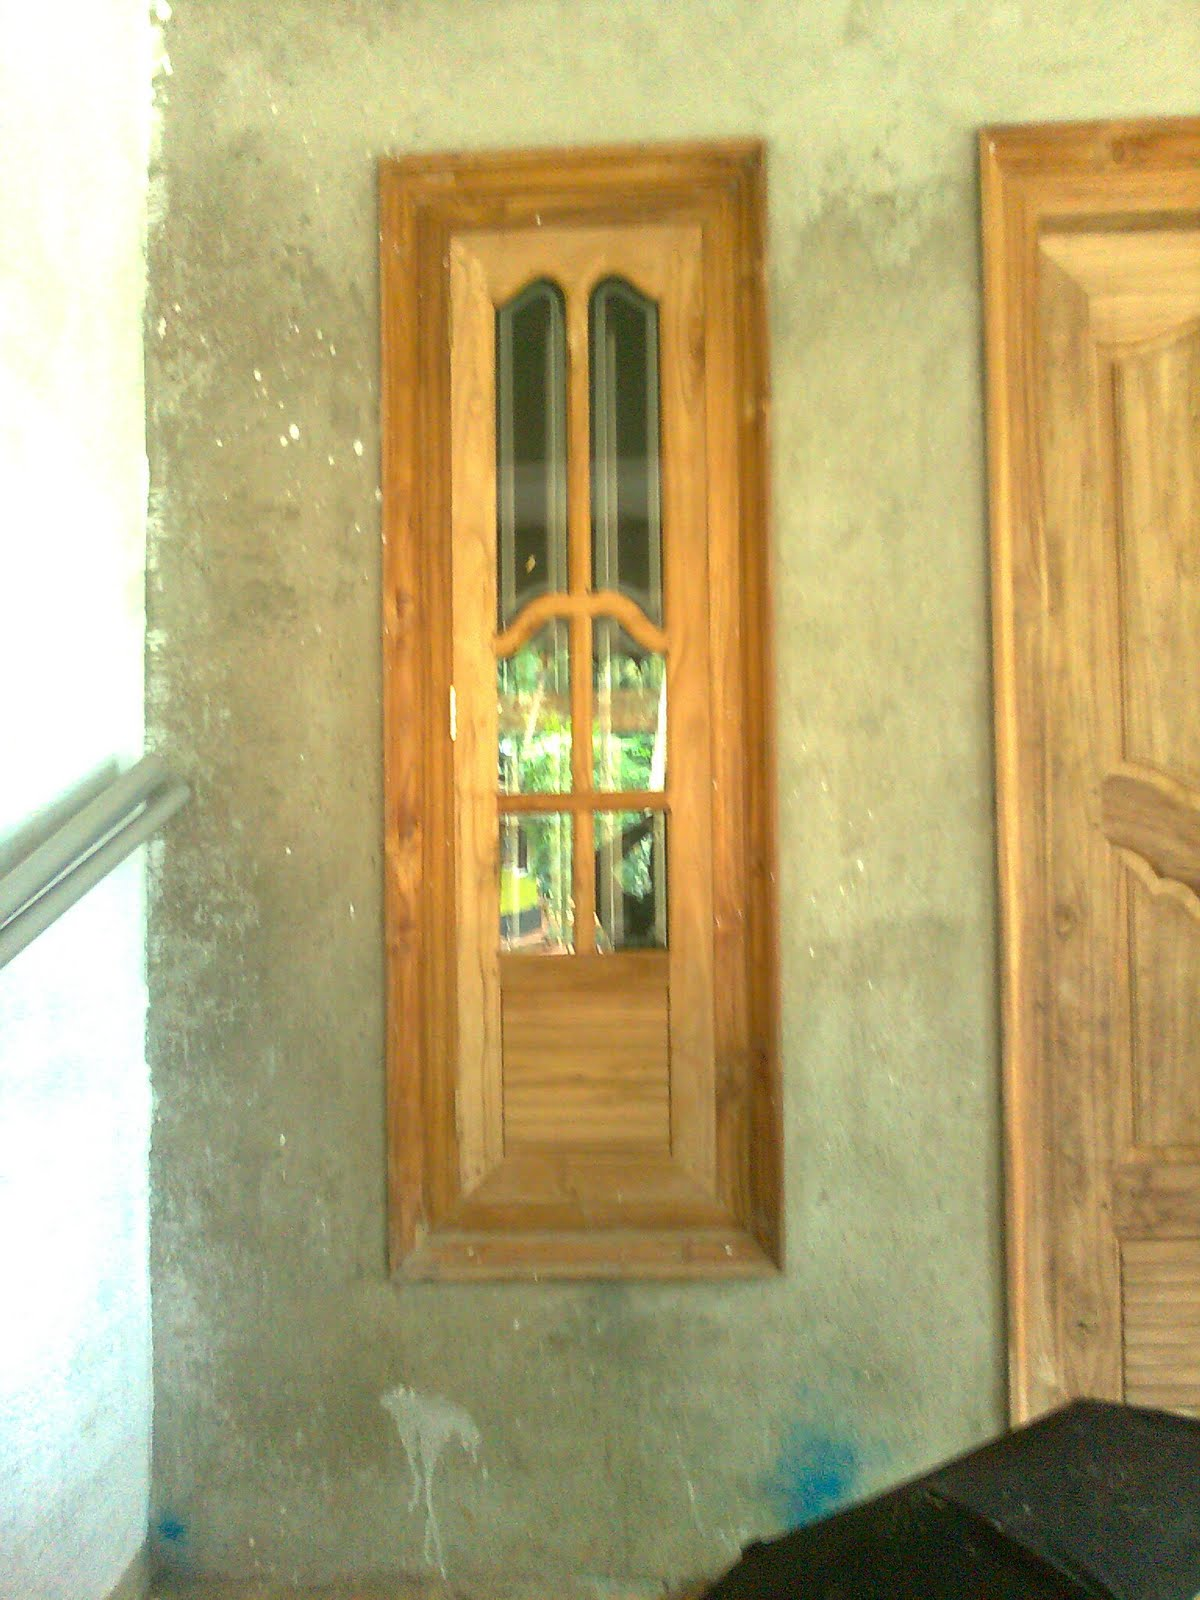 Bavas wood works wooden window doors simple designs for Window design wood